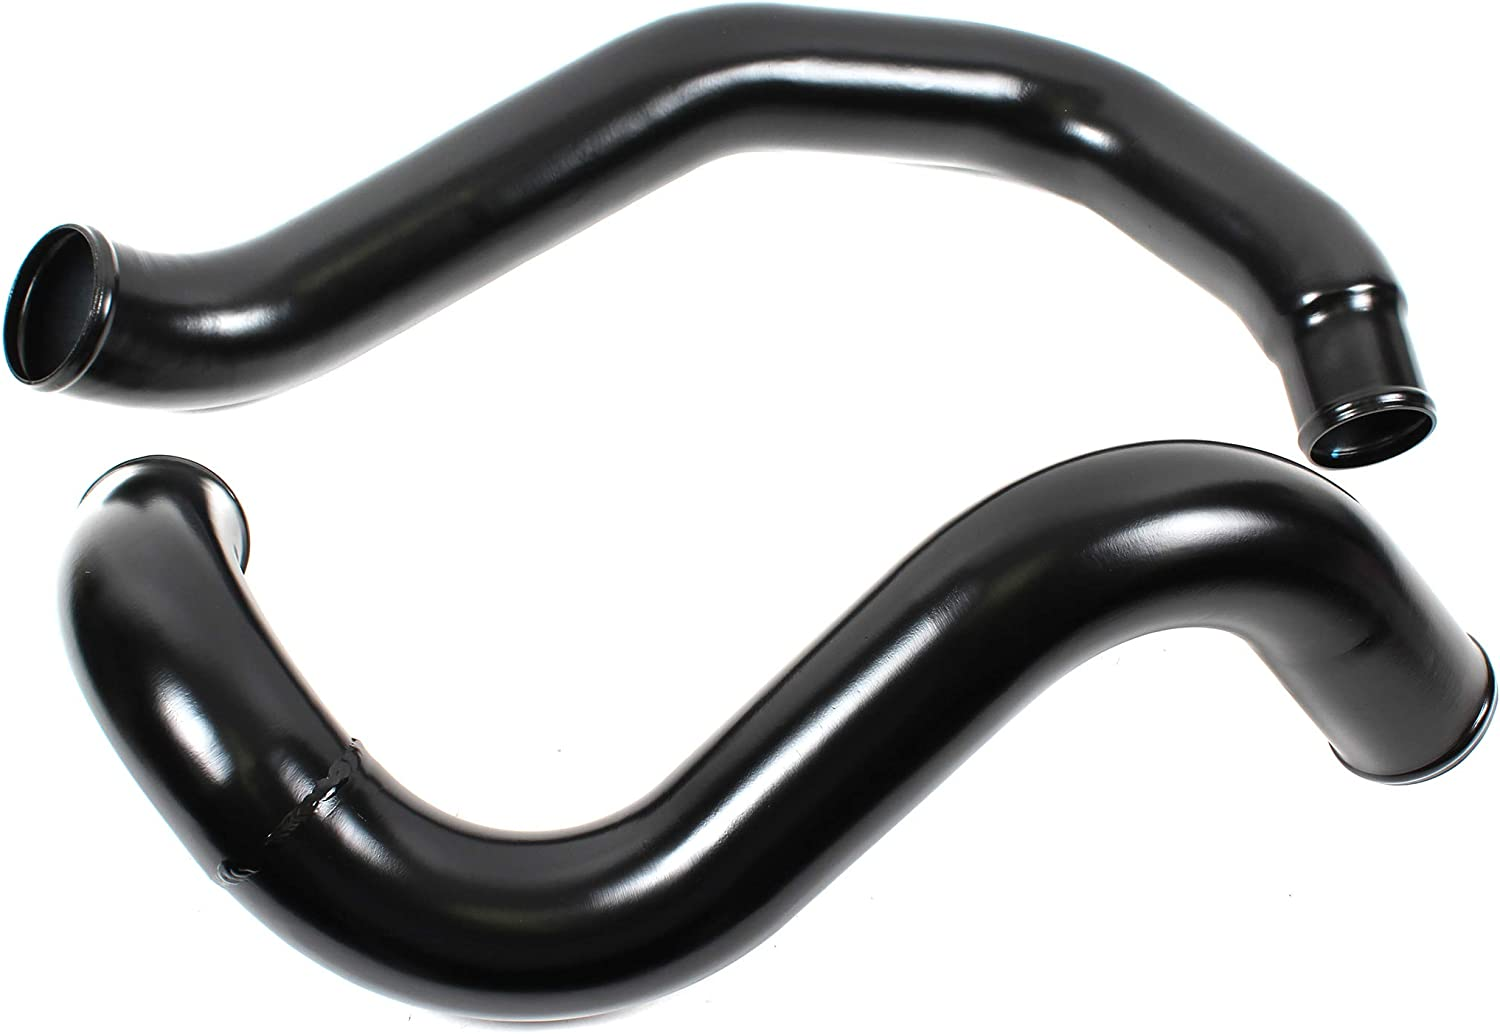 NEW EDK-2000 Turbo Intercooler Pipe and Boot Kit for 2003-07 Ford Super Duty F-250 F-350 F-450 F-550 6.0L 363 Power Stroke Diesel Turbo